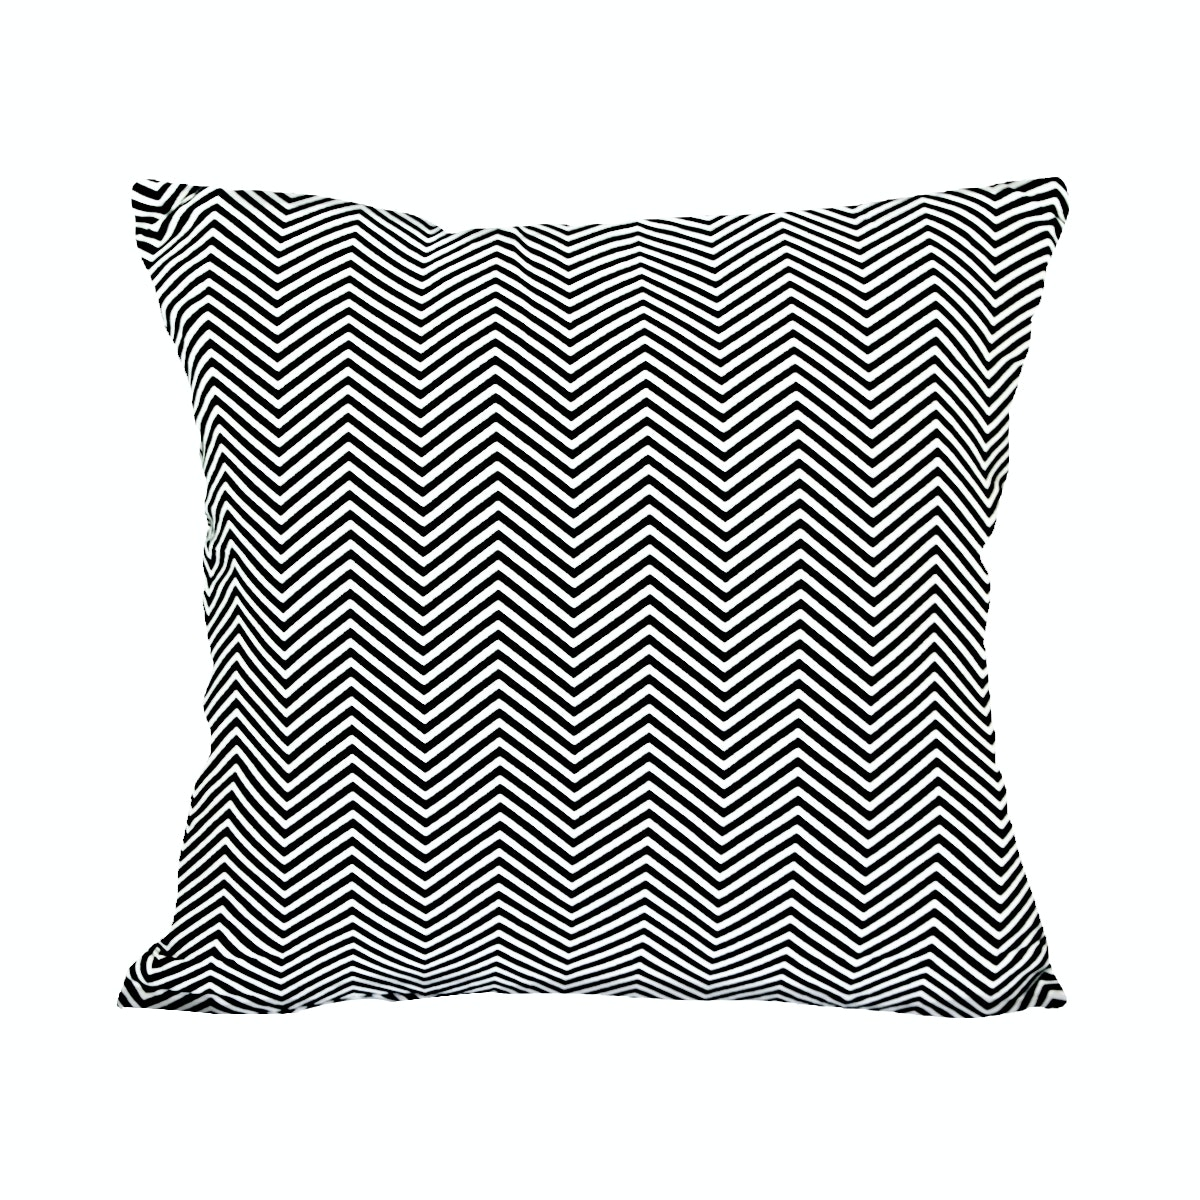 Stiletto Living Cushion Cover / Sarung Bantal Monokrom - Bw Heringbone